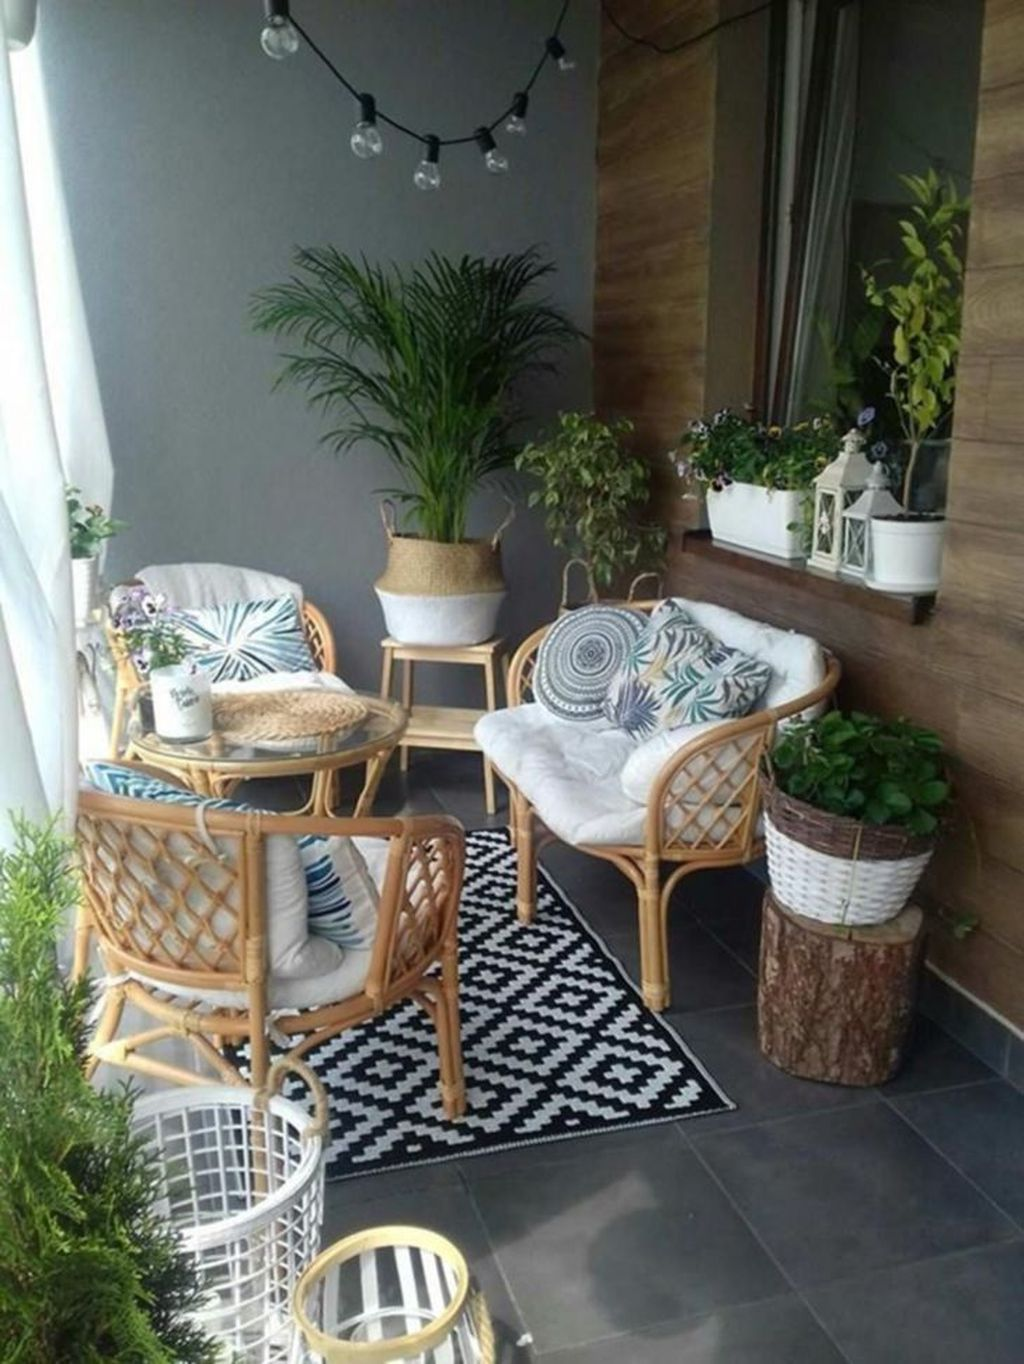 44 Stunning Winter Balcony Decorating Ideas - HOMYHOMEE | Apartment balcony decorating, Balcony decor, Small balcony decor